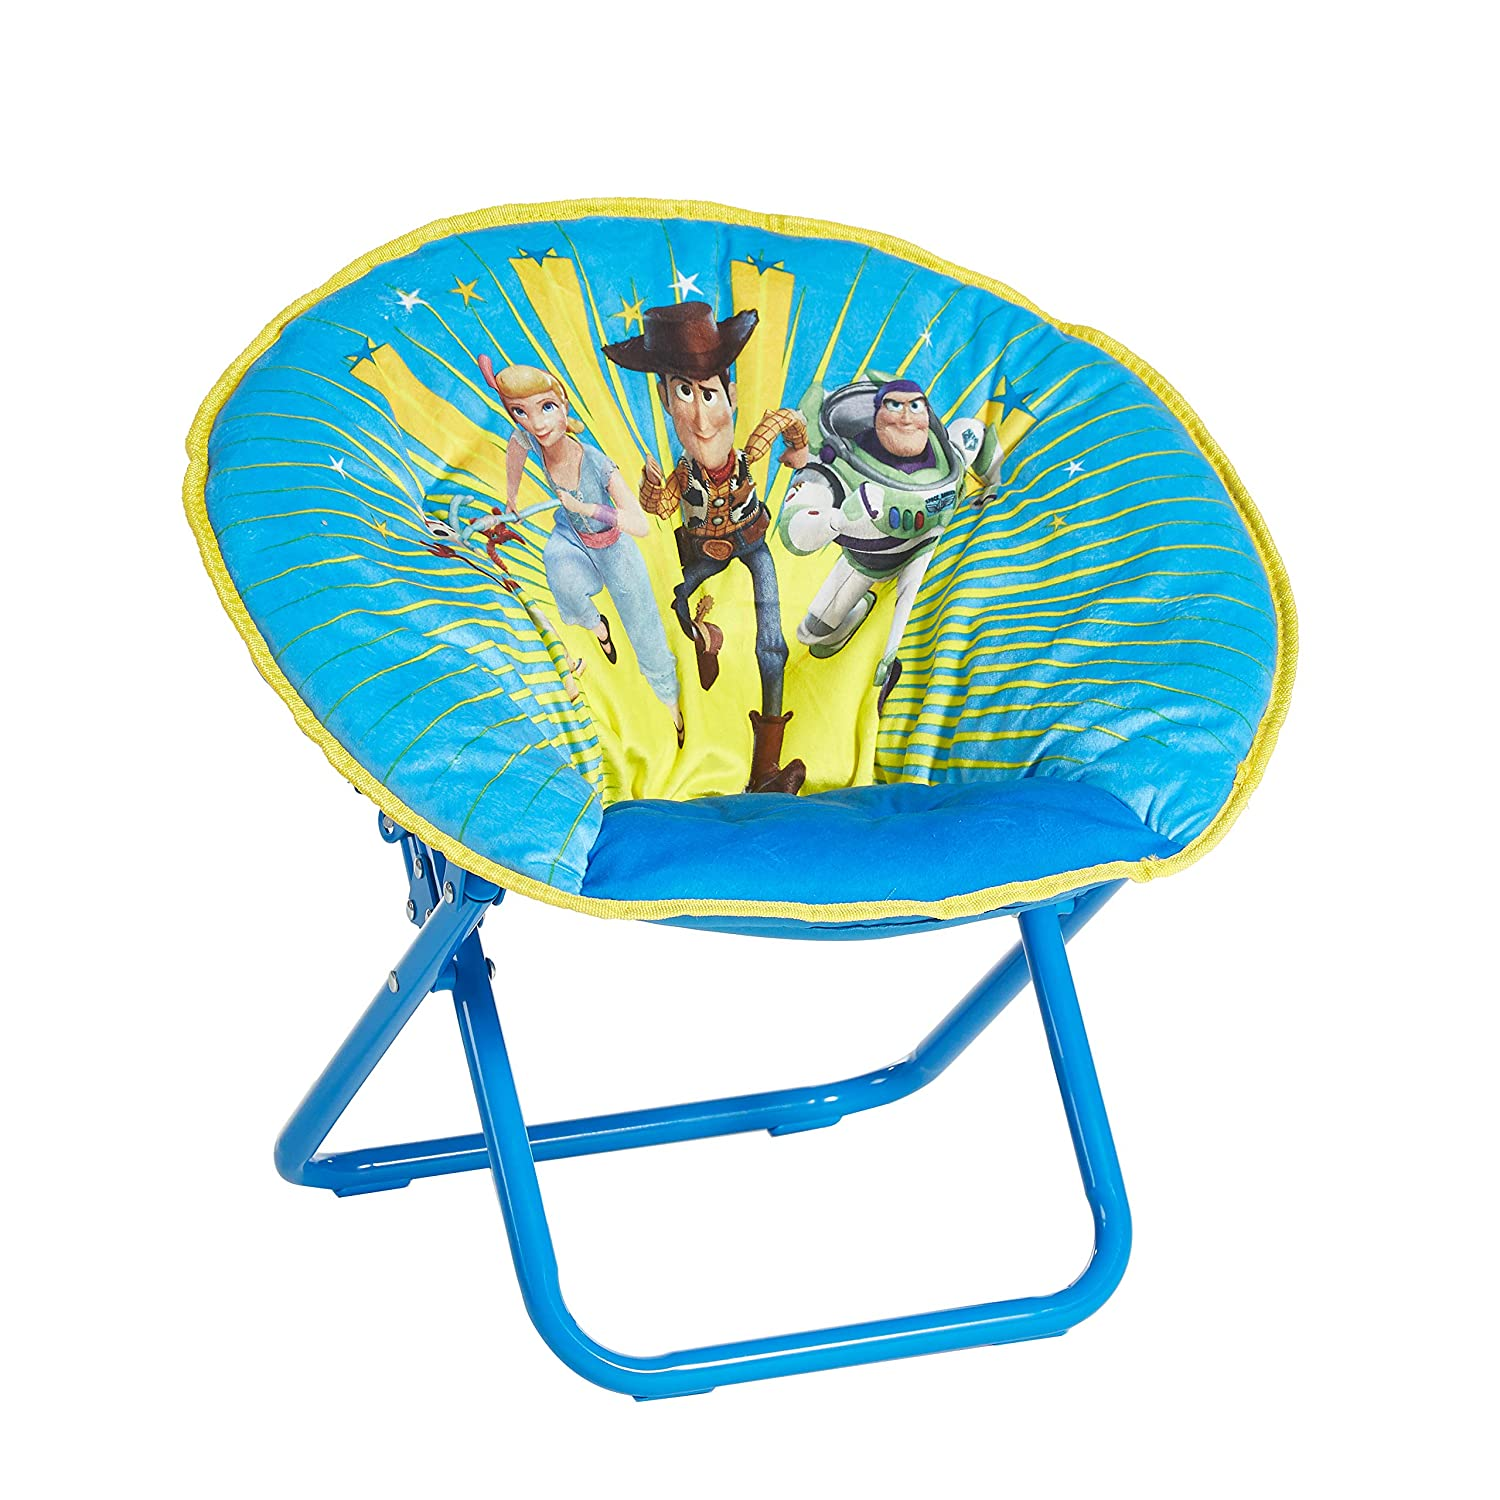 Disney Toy Story 4 Toddler Saucer Chair